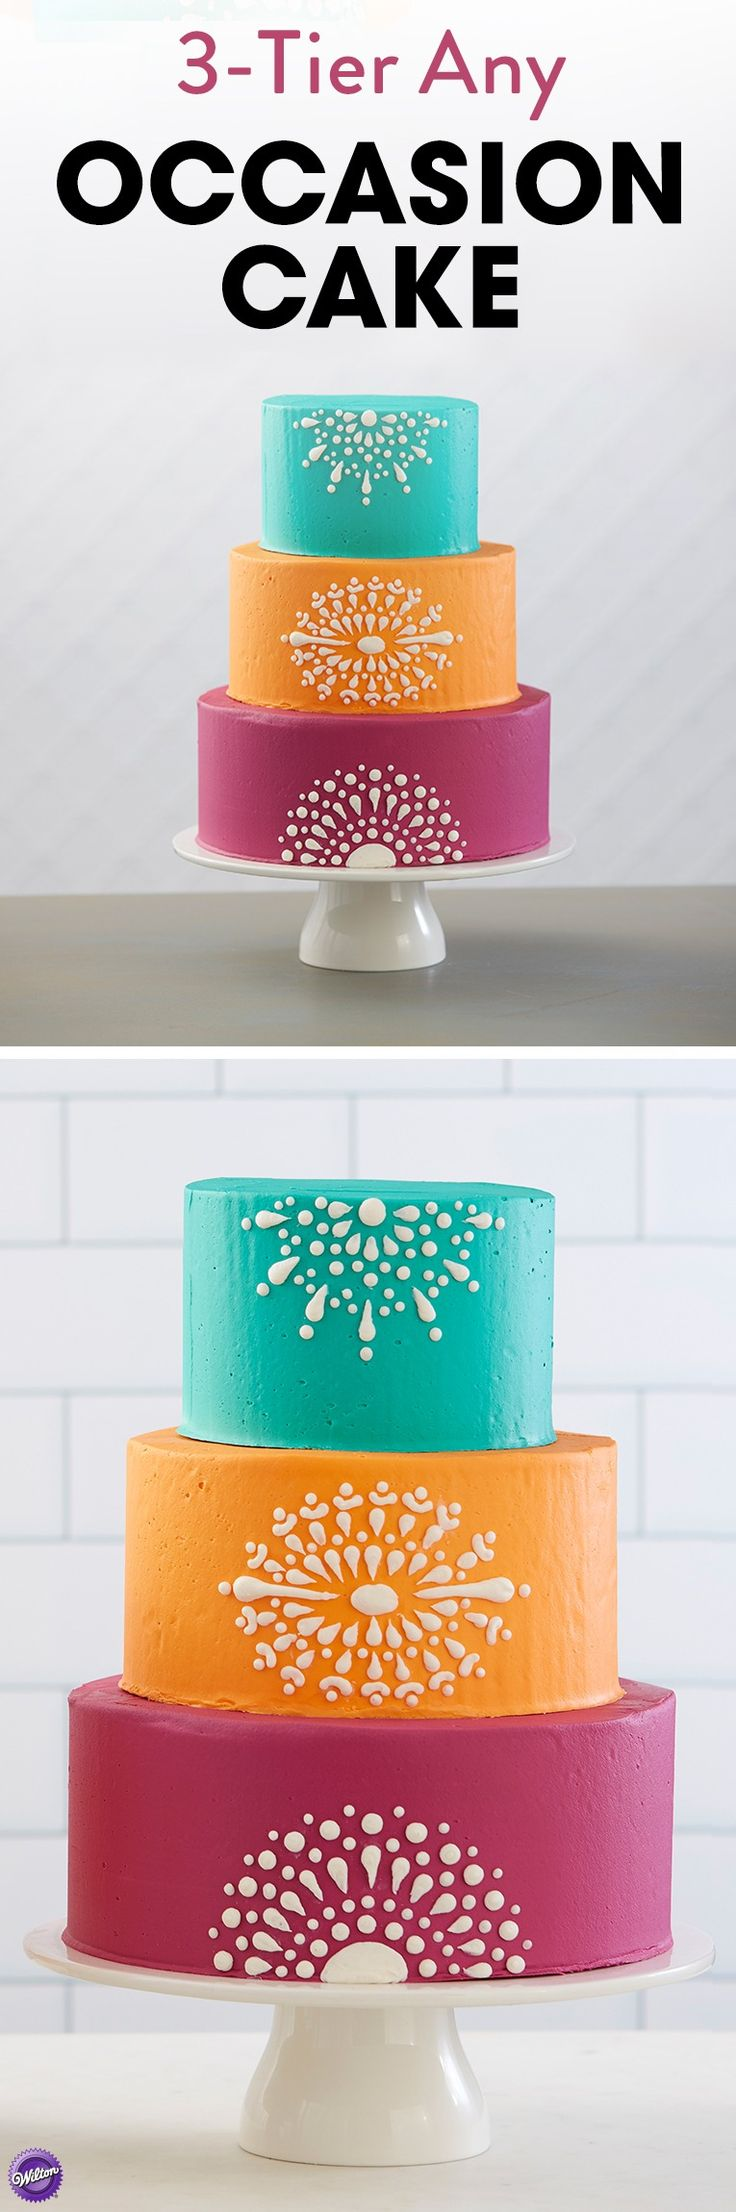 A stunning cake that shines with vibrant colors and intricate designs, this 3-Tier Any Occasion Cake is a wonder to behold. Large enough to feed about 60 people, this cake would be great for a small wedding, birthday party, wedding shower and more.